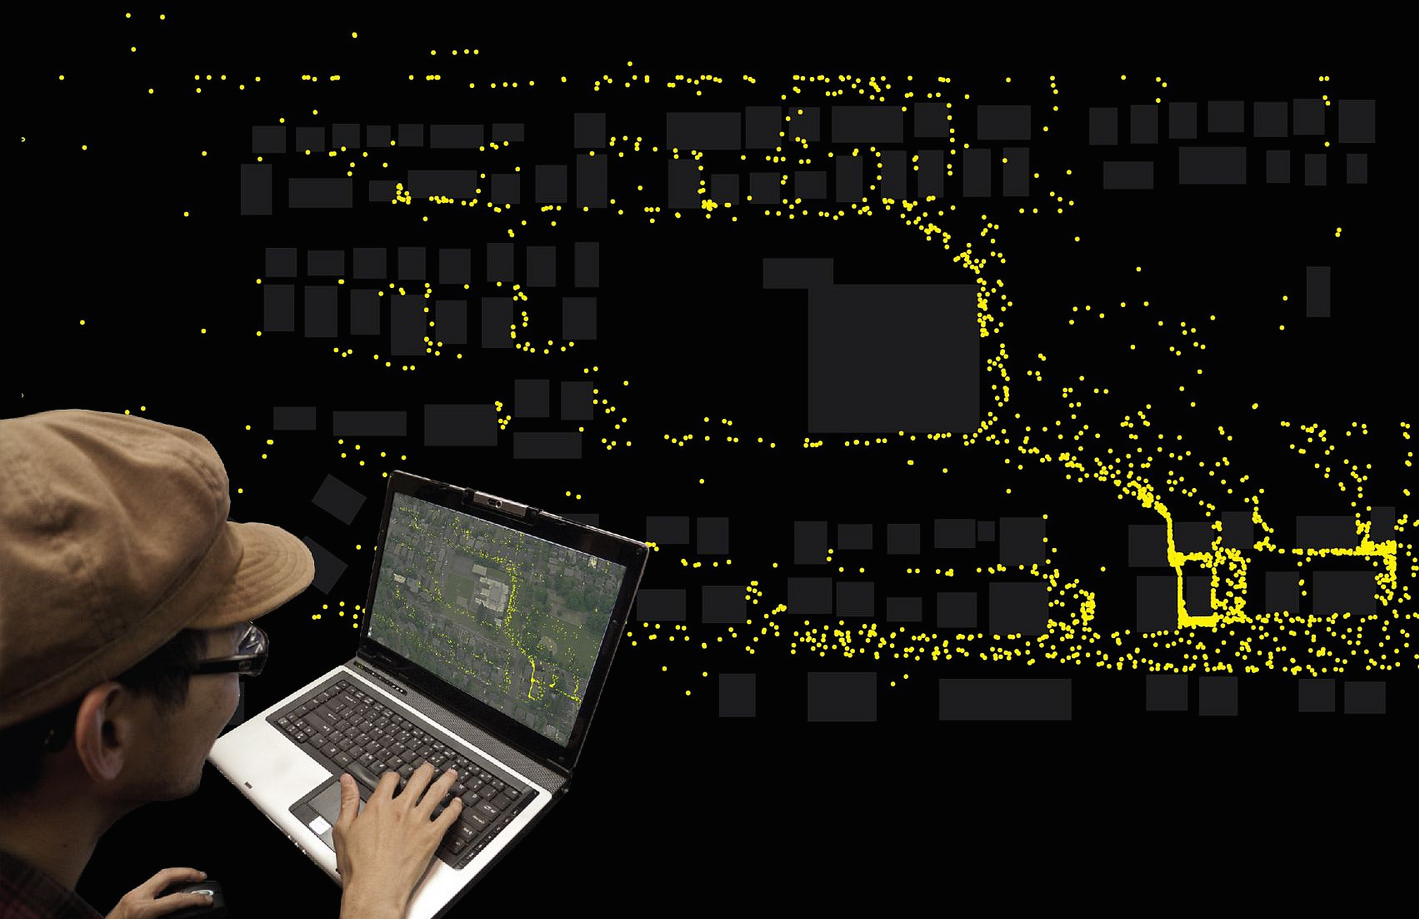 """Data Visualization of Street Trees"" by Intel Free Press 2013 CC BY-SA 2.0"